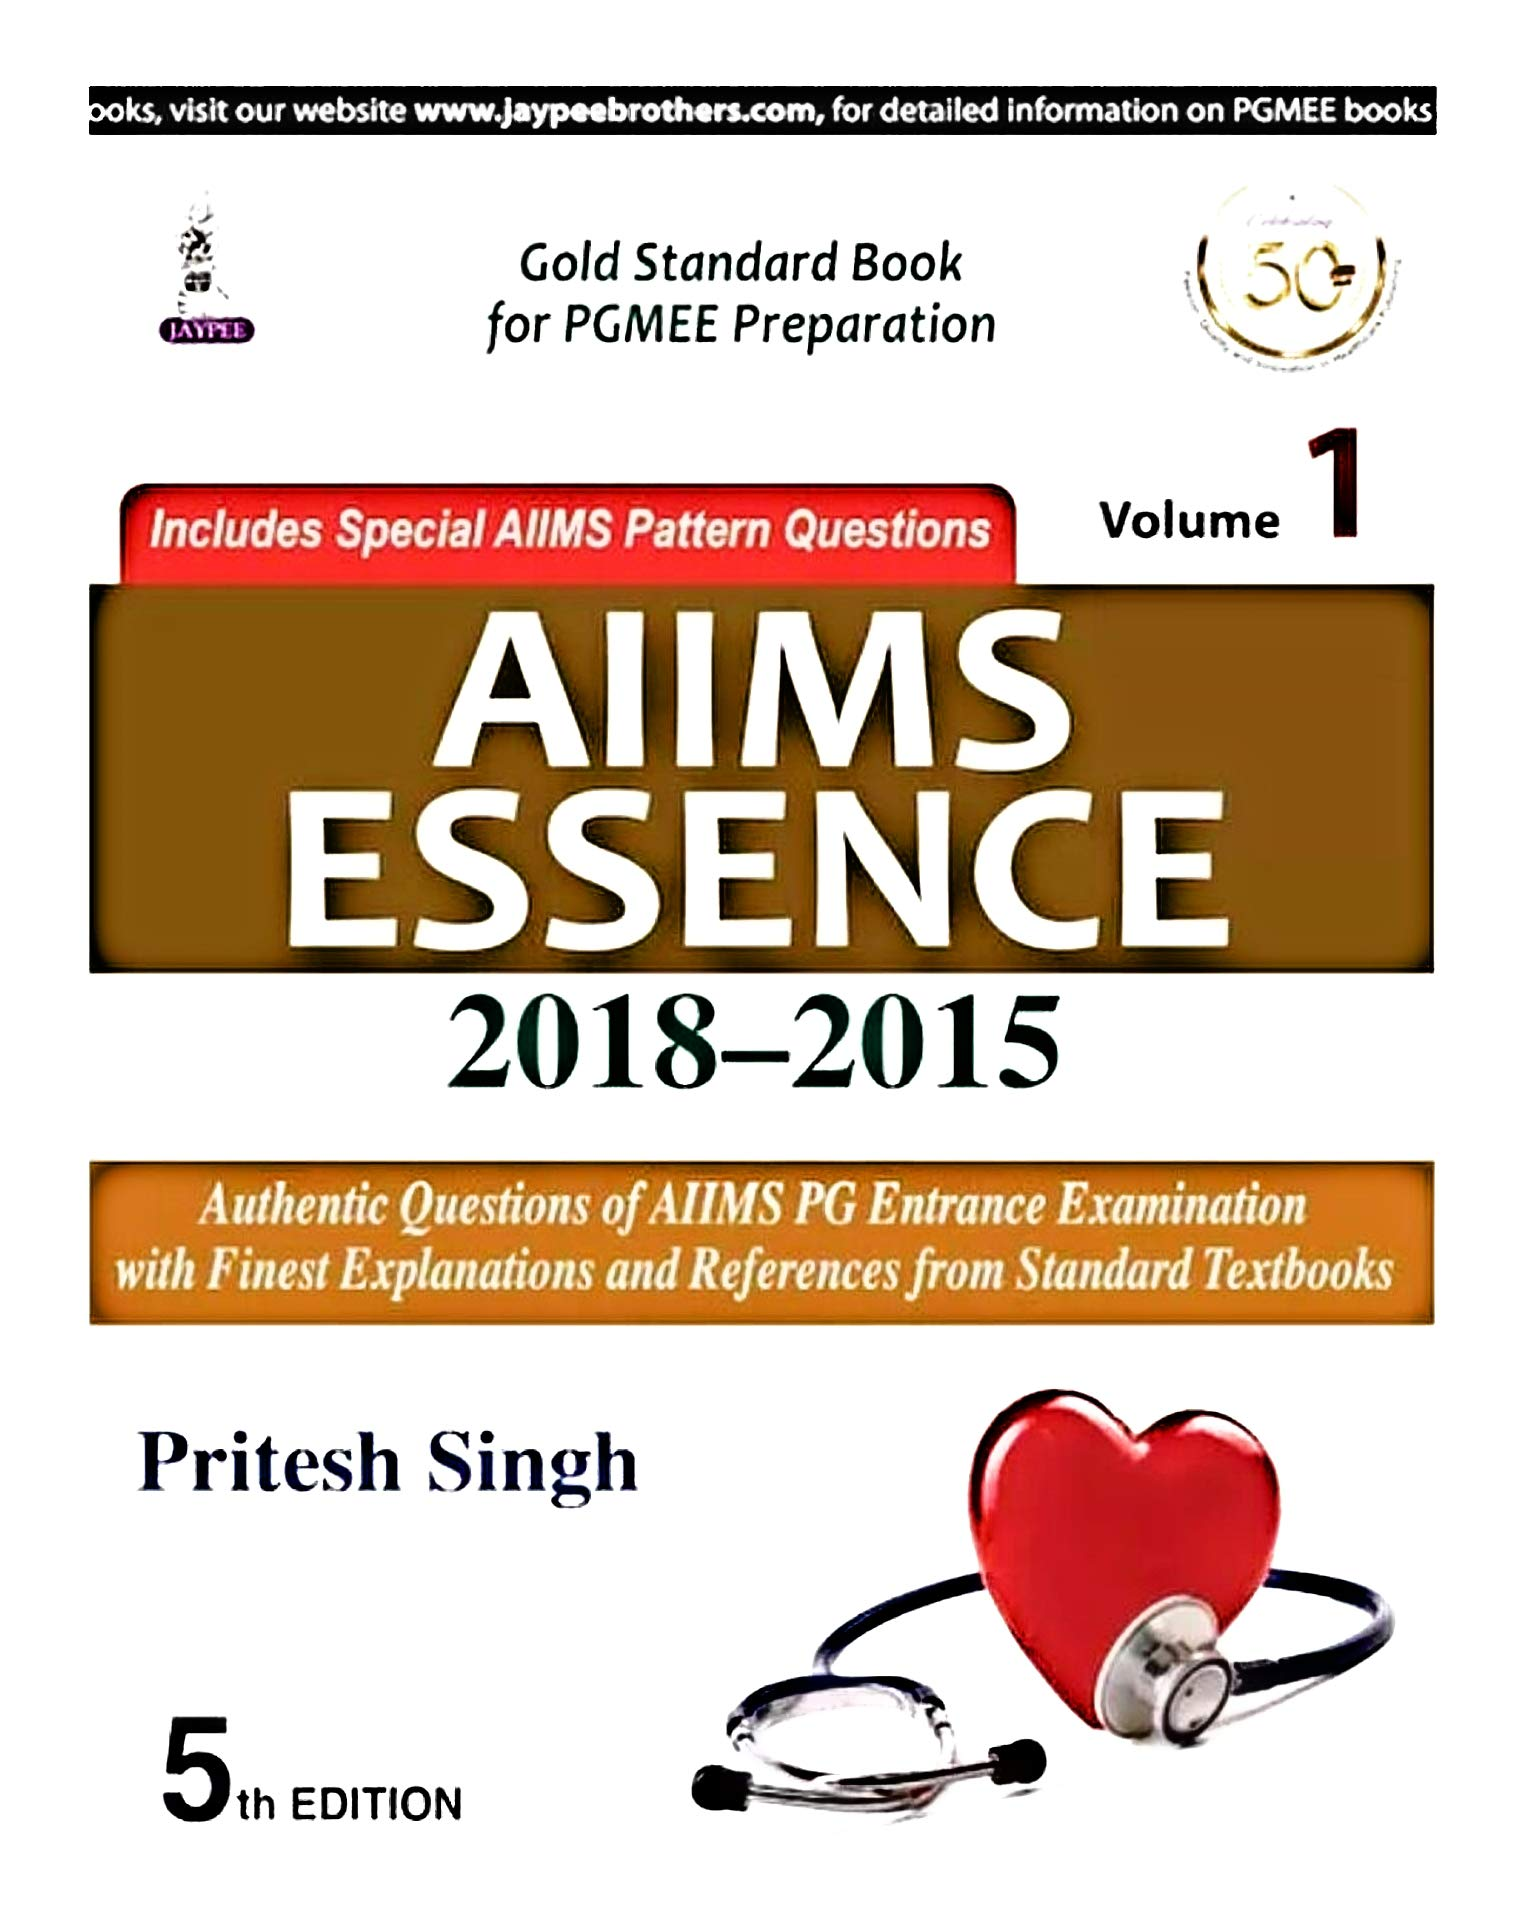 Buy Aiims Essence 2018-2015 (Volume 1) Book Online at Low